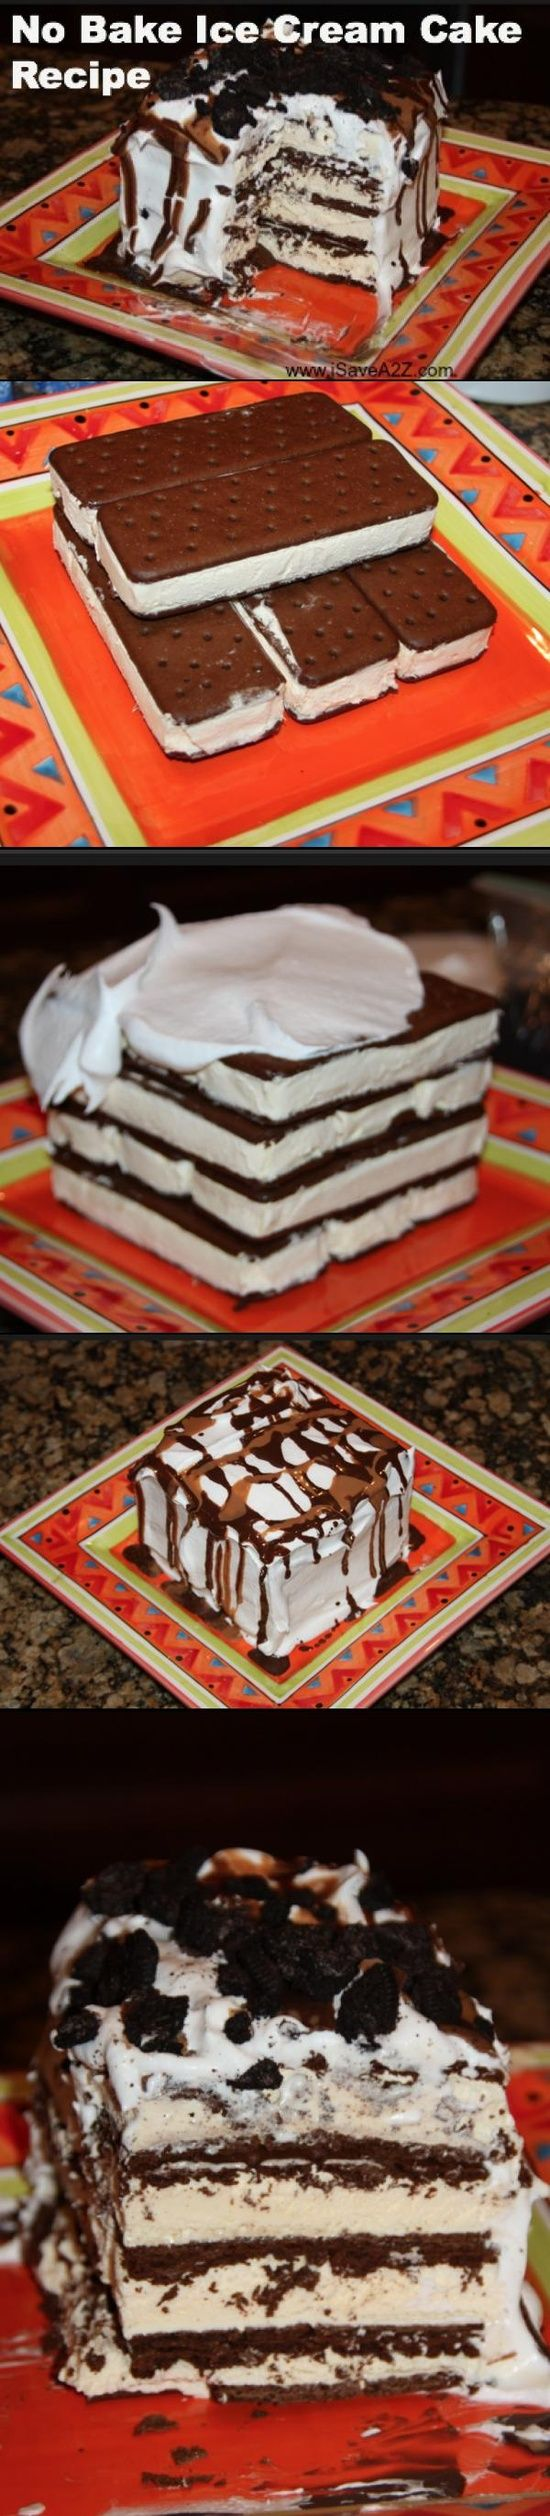 NO BAKING!! Ice Cream Sandwich cake that is to die for.